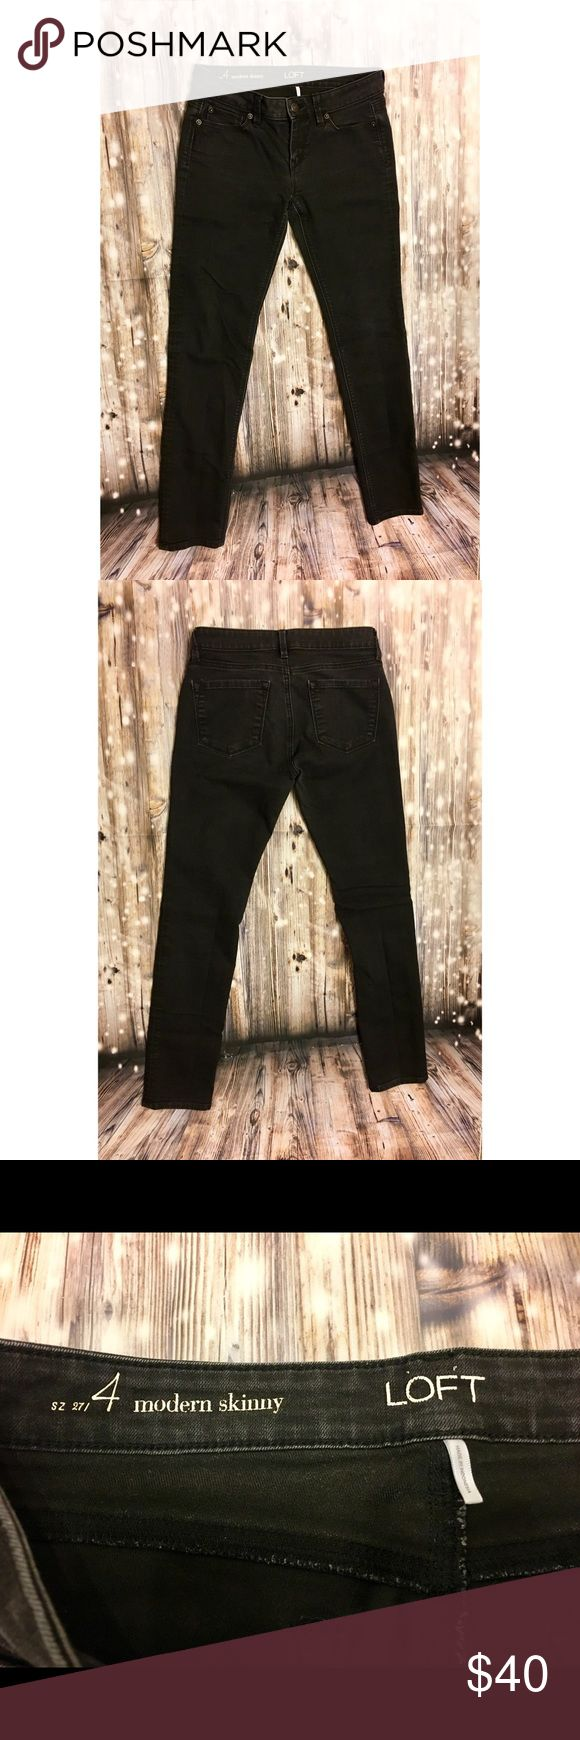 LOFT faded black modern skinny jeans Faded black modern skinny jeans, not super faded but definitely not pure black jeans, super cute stretchy and comfortable, matches anything and everything, great for winter with boots/booties. LOFT Jeans Skinny